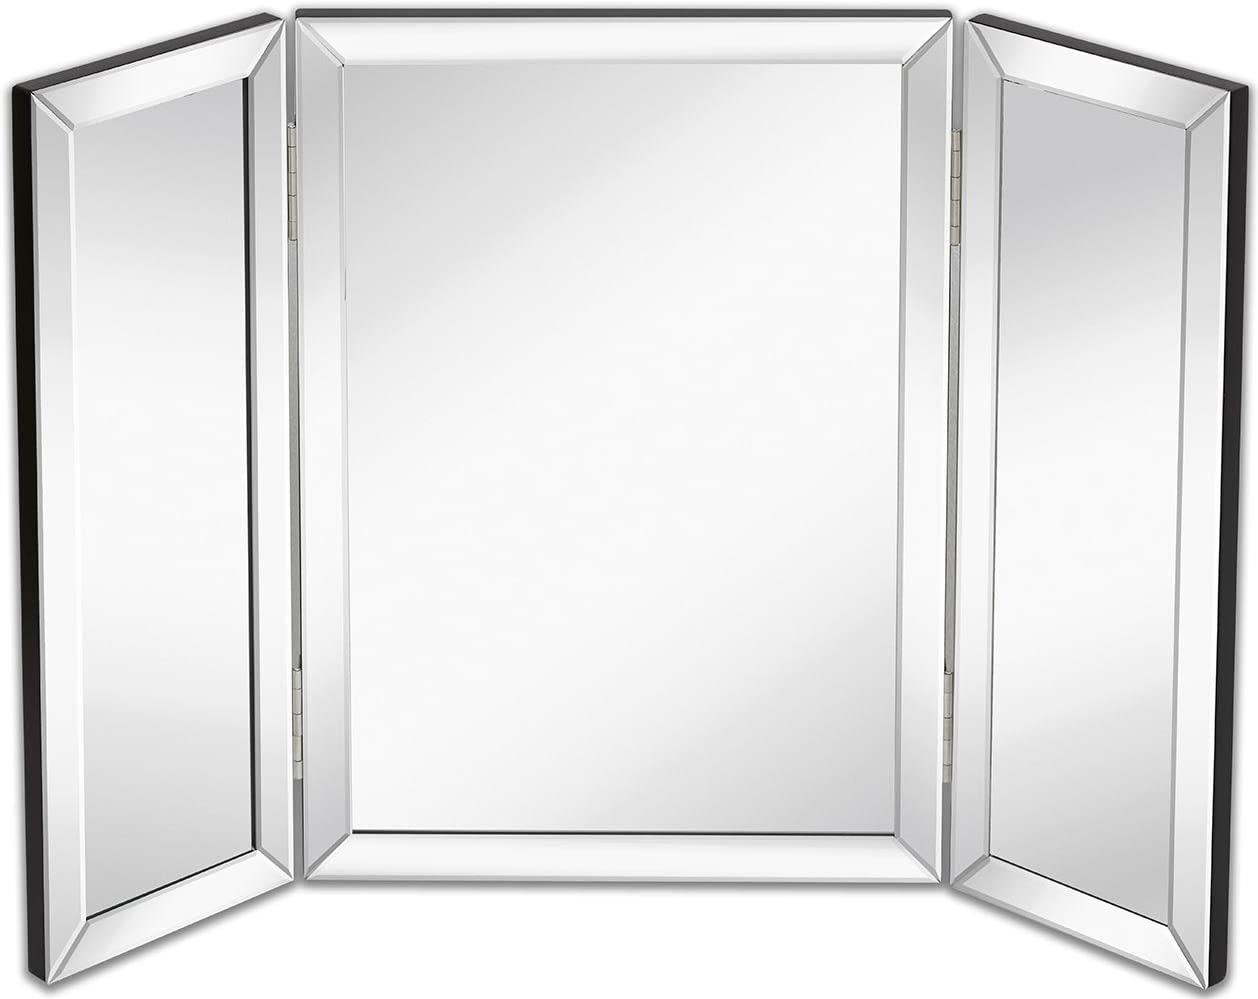 Hamilton Hills Trifold Vanity Mirror Solid Hinged Sided Tri-fold Beveled Mirrored Edges 3 Way Hangable on Wall or Tabletop Cosmetic Makeup Mirror 21 x 30